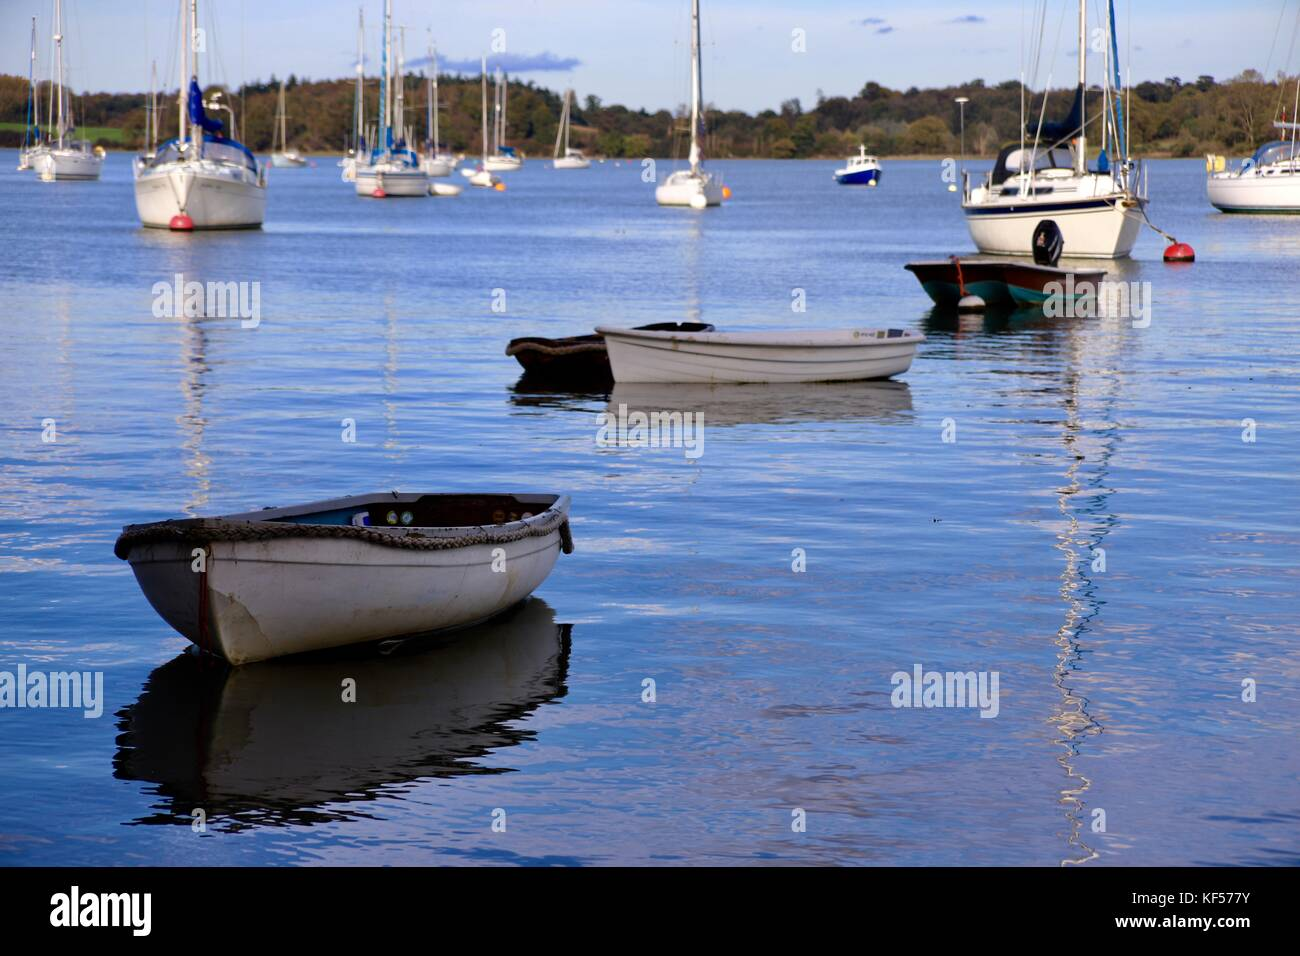 boats-and-reflections-in-the-shiny-river